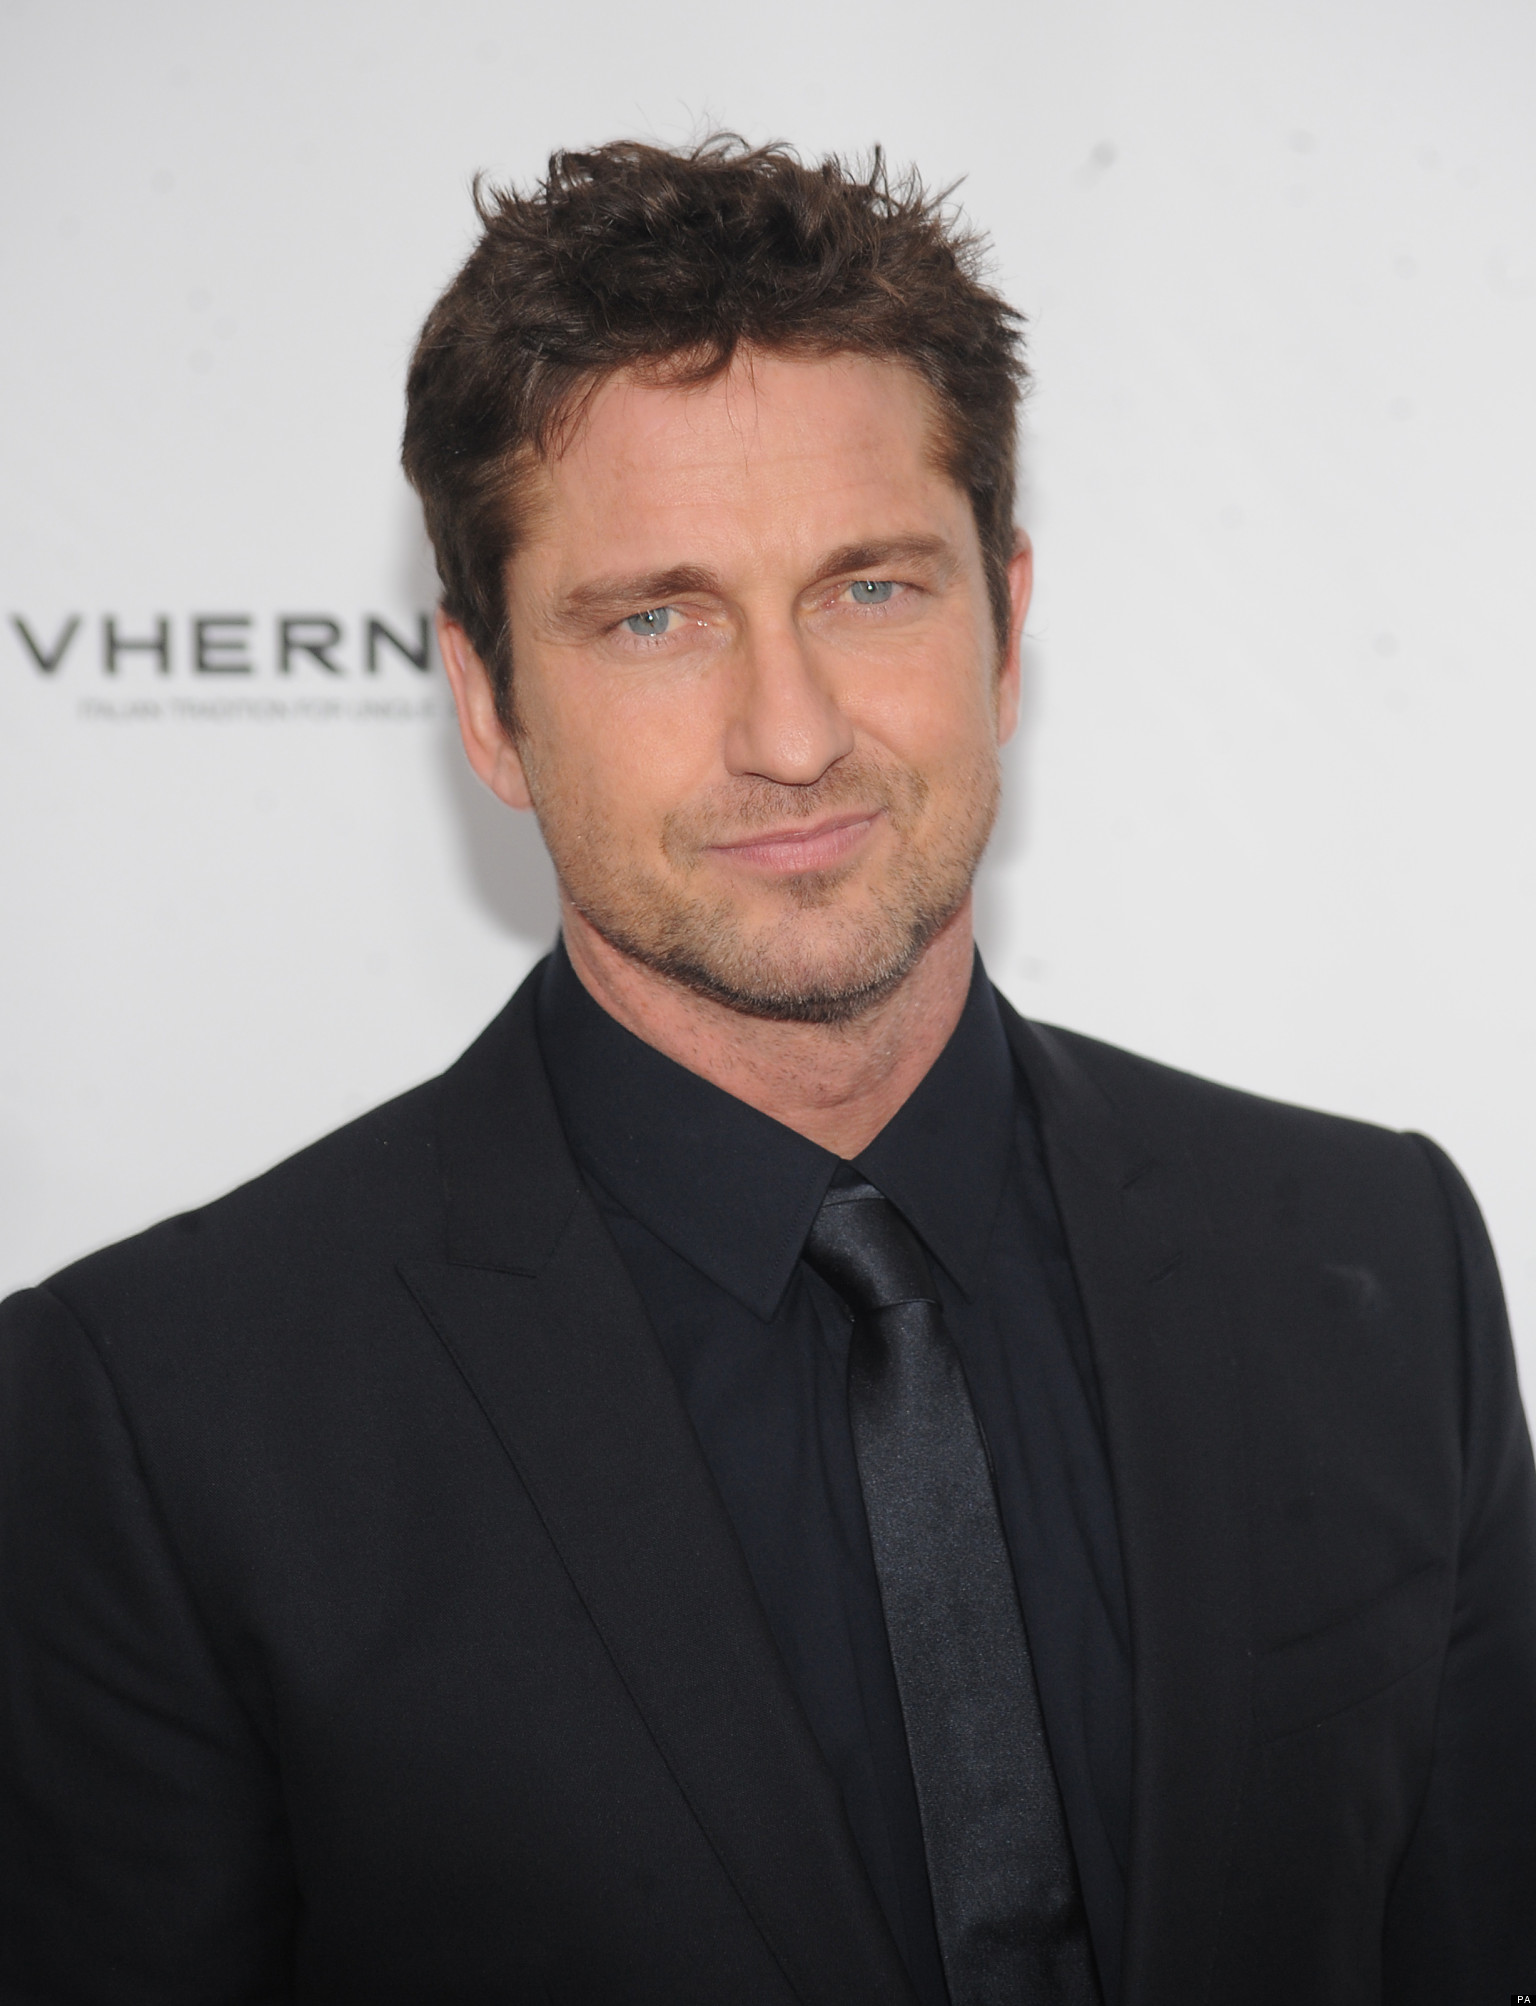 Gerard Butler Tells HuffPostUK About The Surfing Accident That Nearly ...